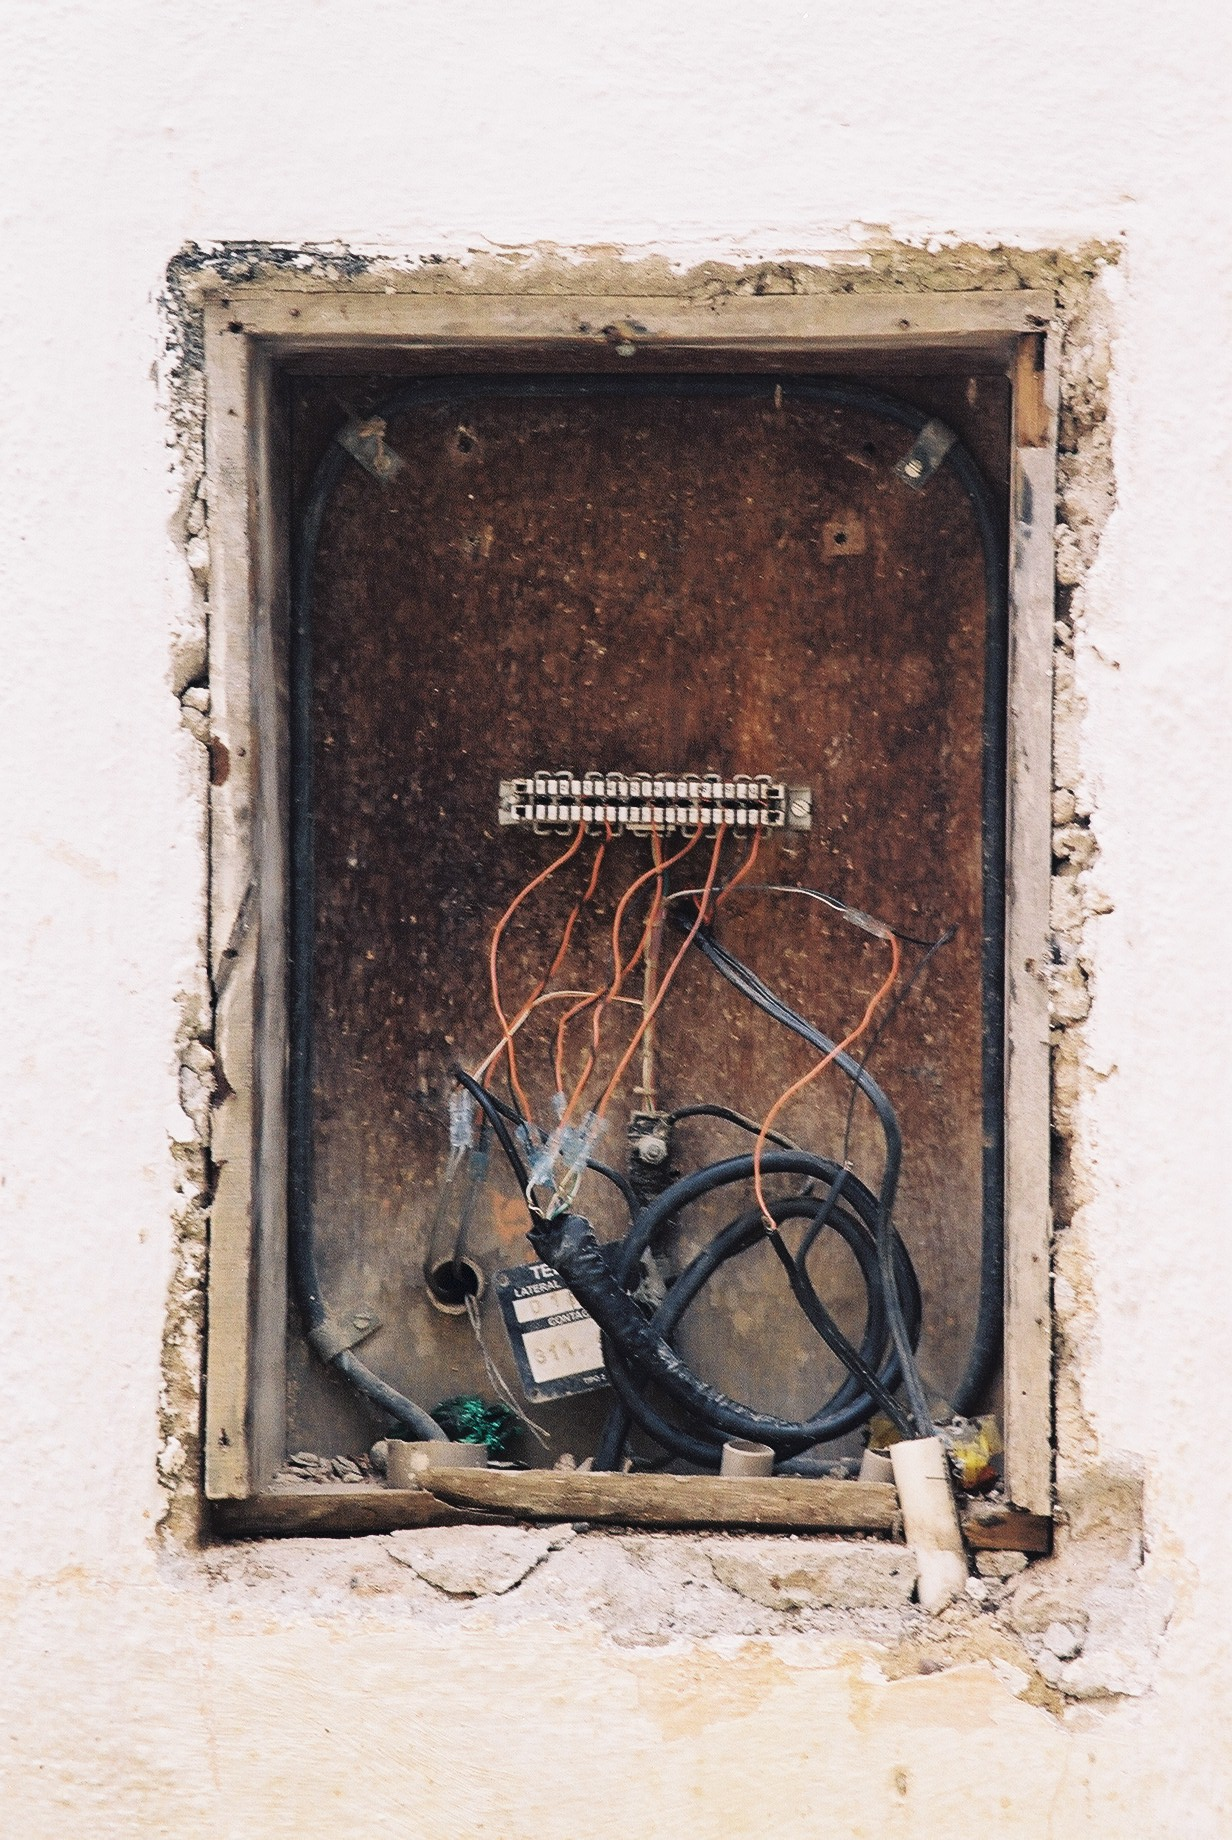 junction-box-parati.jpg